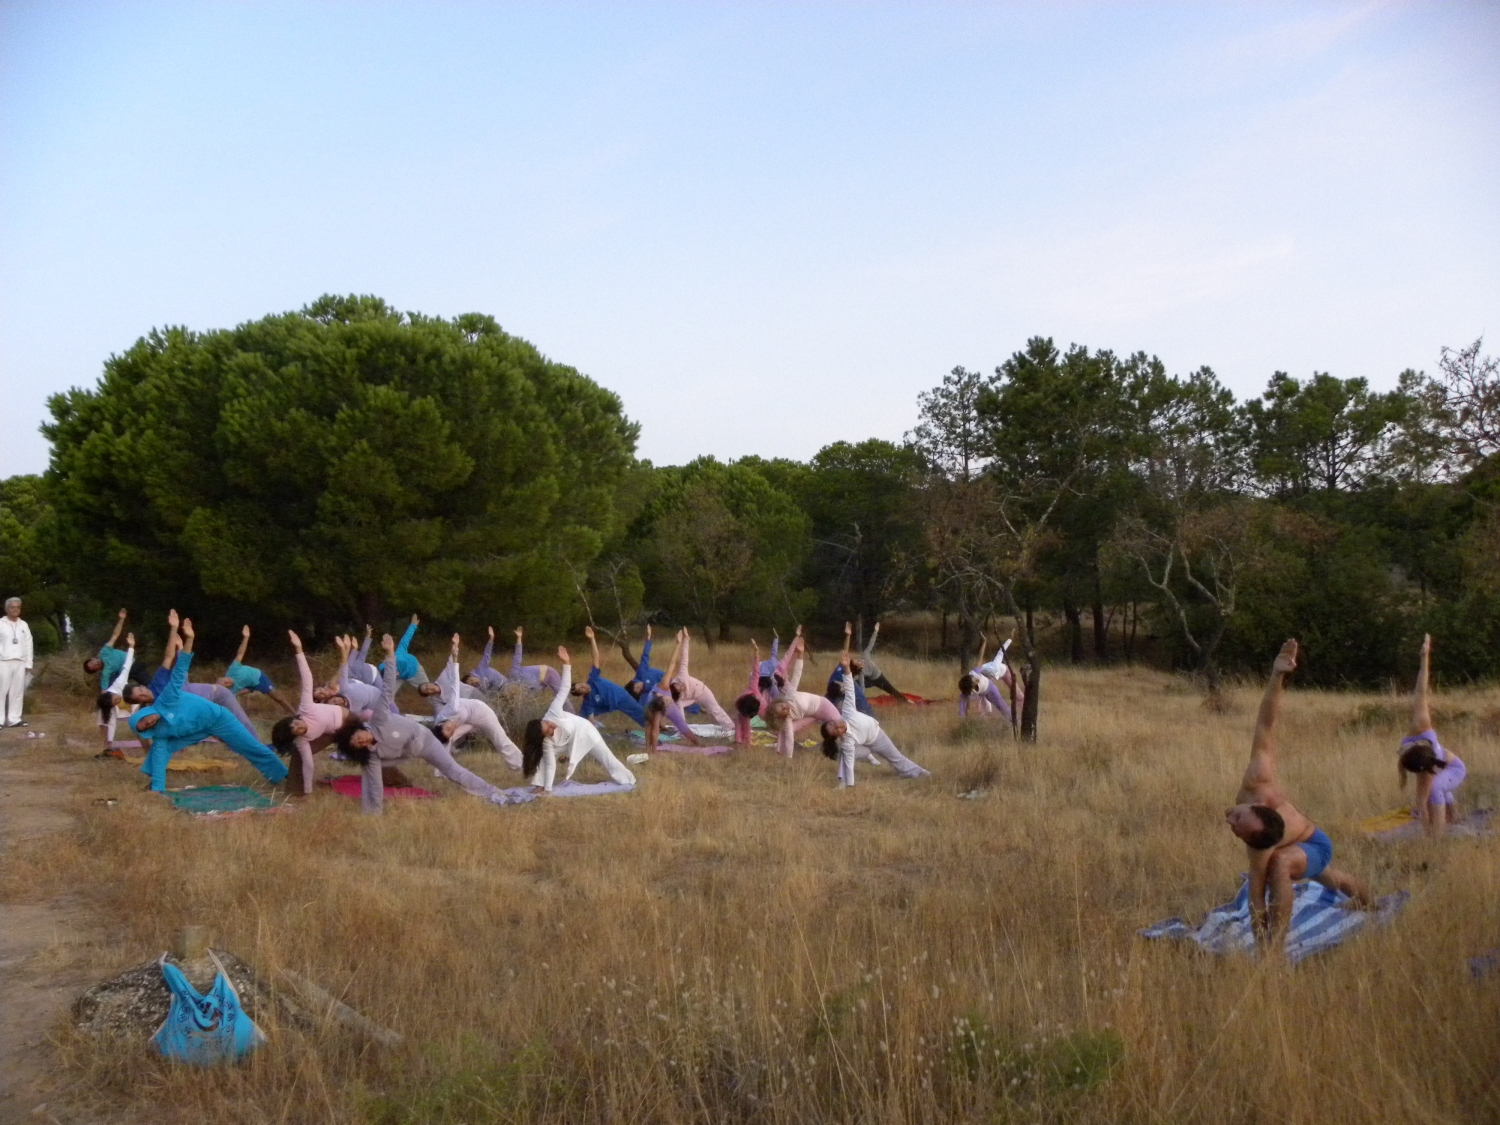 Semana Intensiva do Yoga - 2009 - Quinta da Calma, Algarve